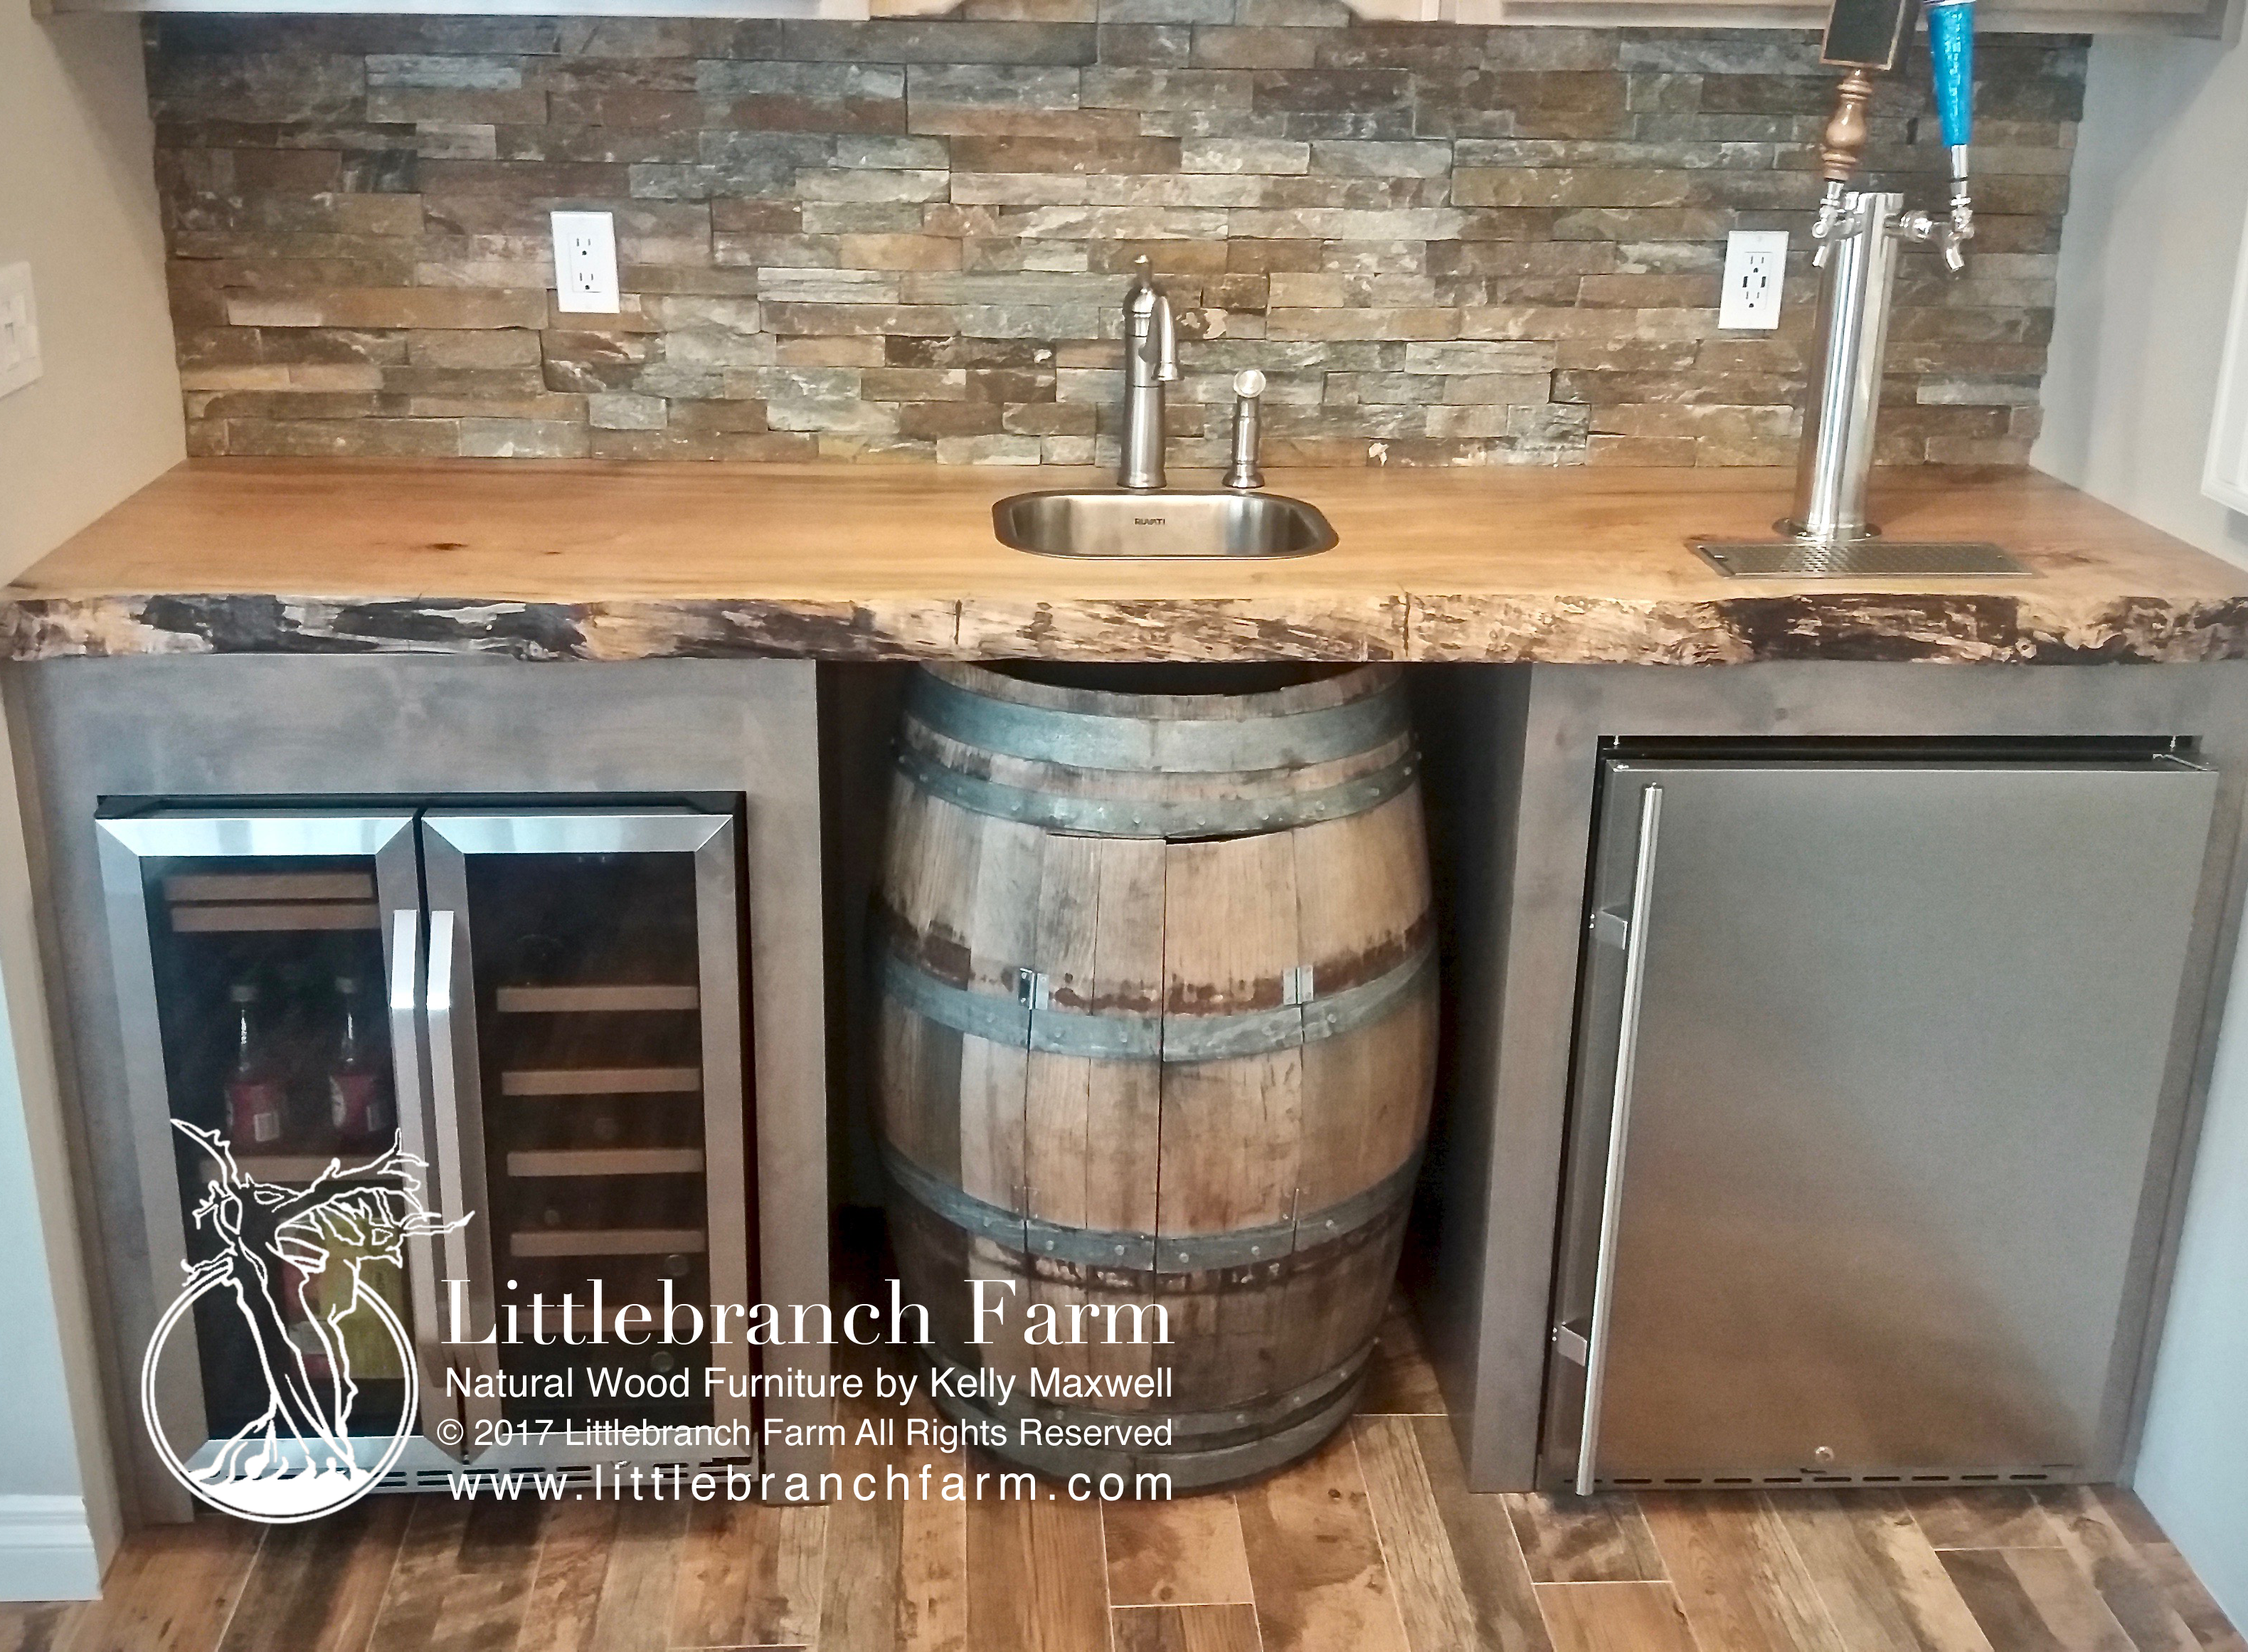 Wood Slab Kitchen Countertops Natural Wood Countertops  Live Edge Wood Littlebranch Farm